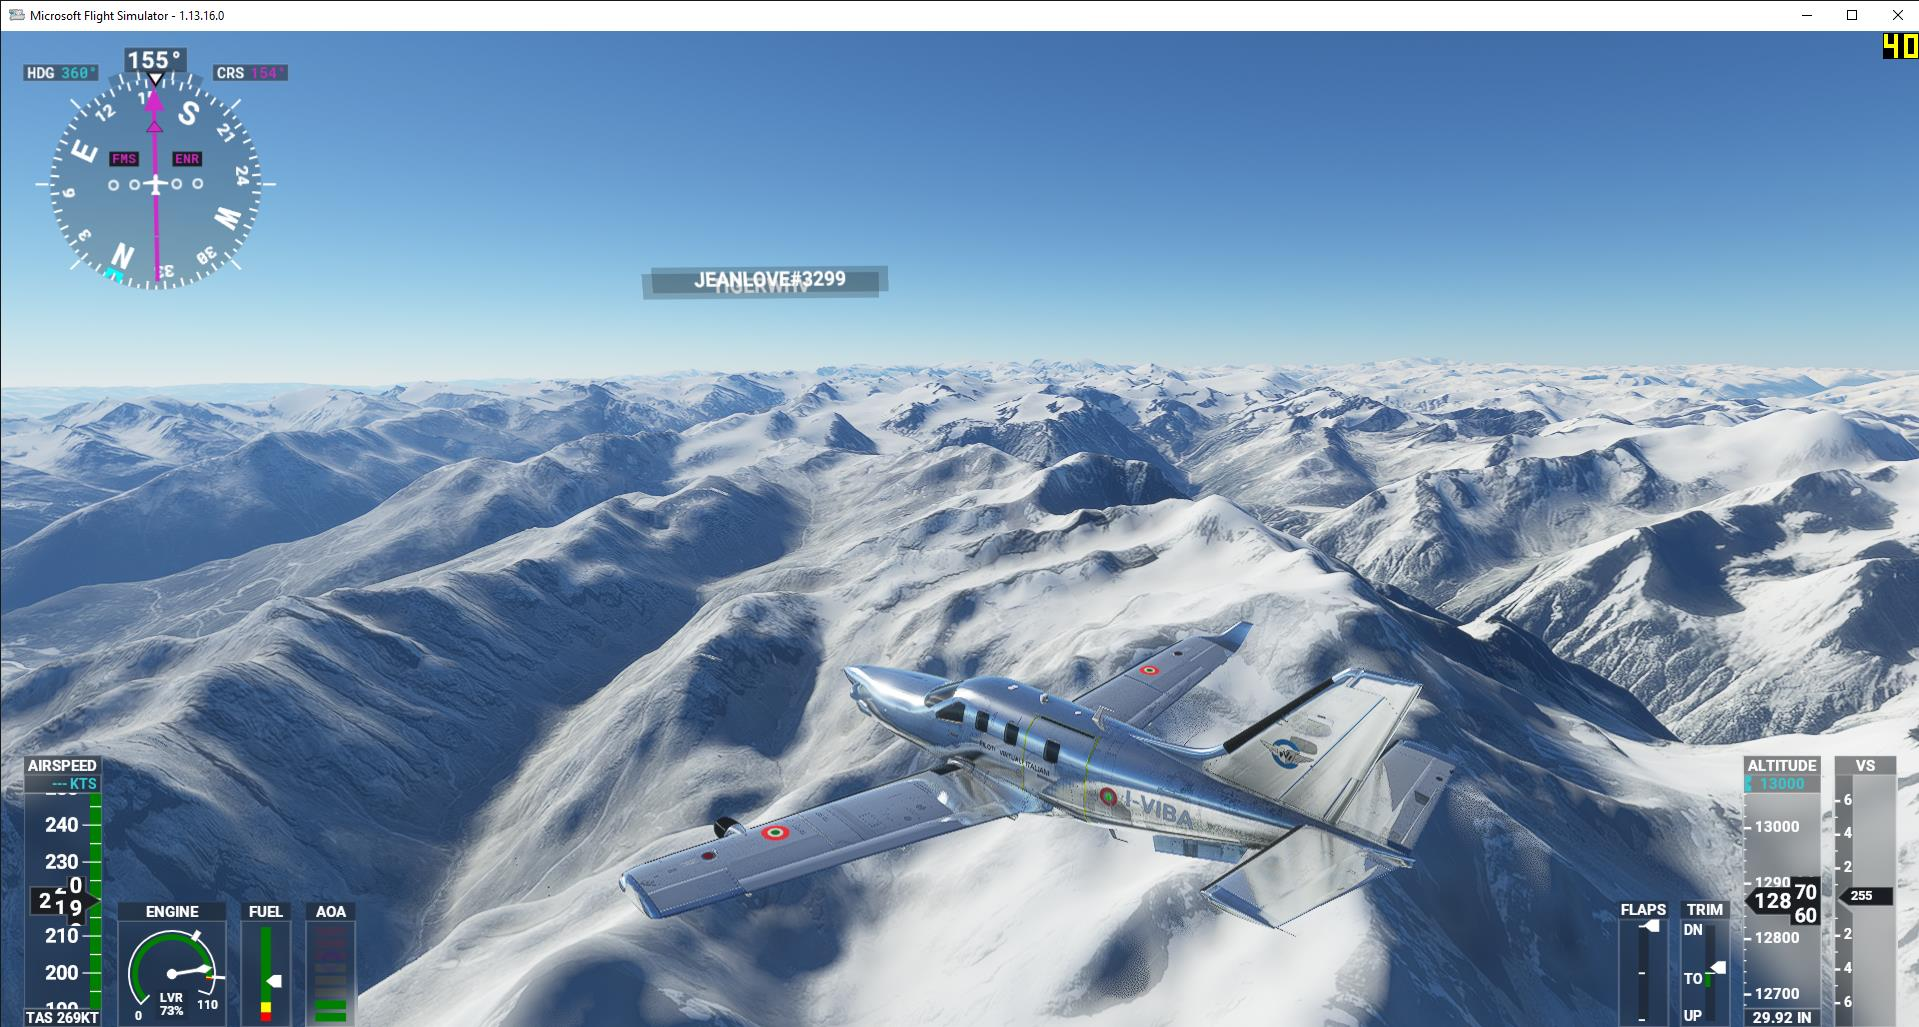 https://vivendobyte.blob.core.windows.net/58401/Microsoft Flight Simulator 23_02_2021 13_04_52.jpg